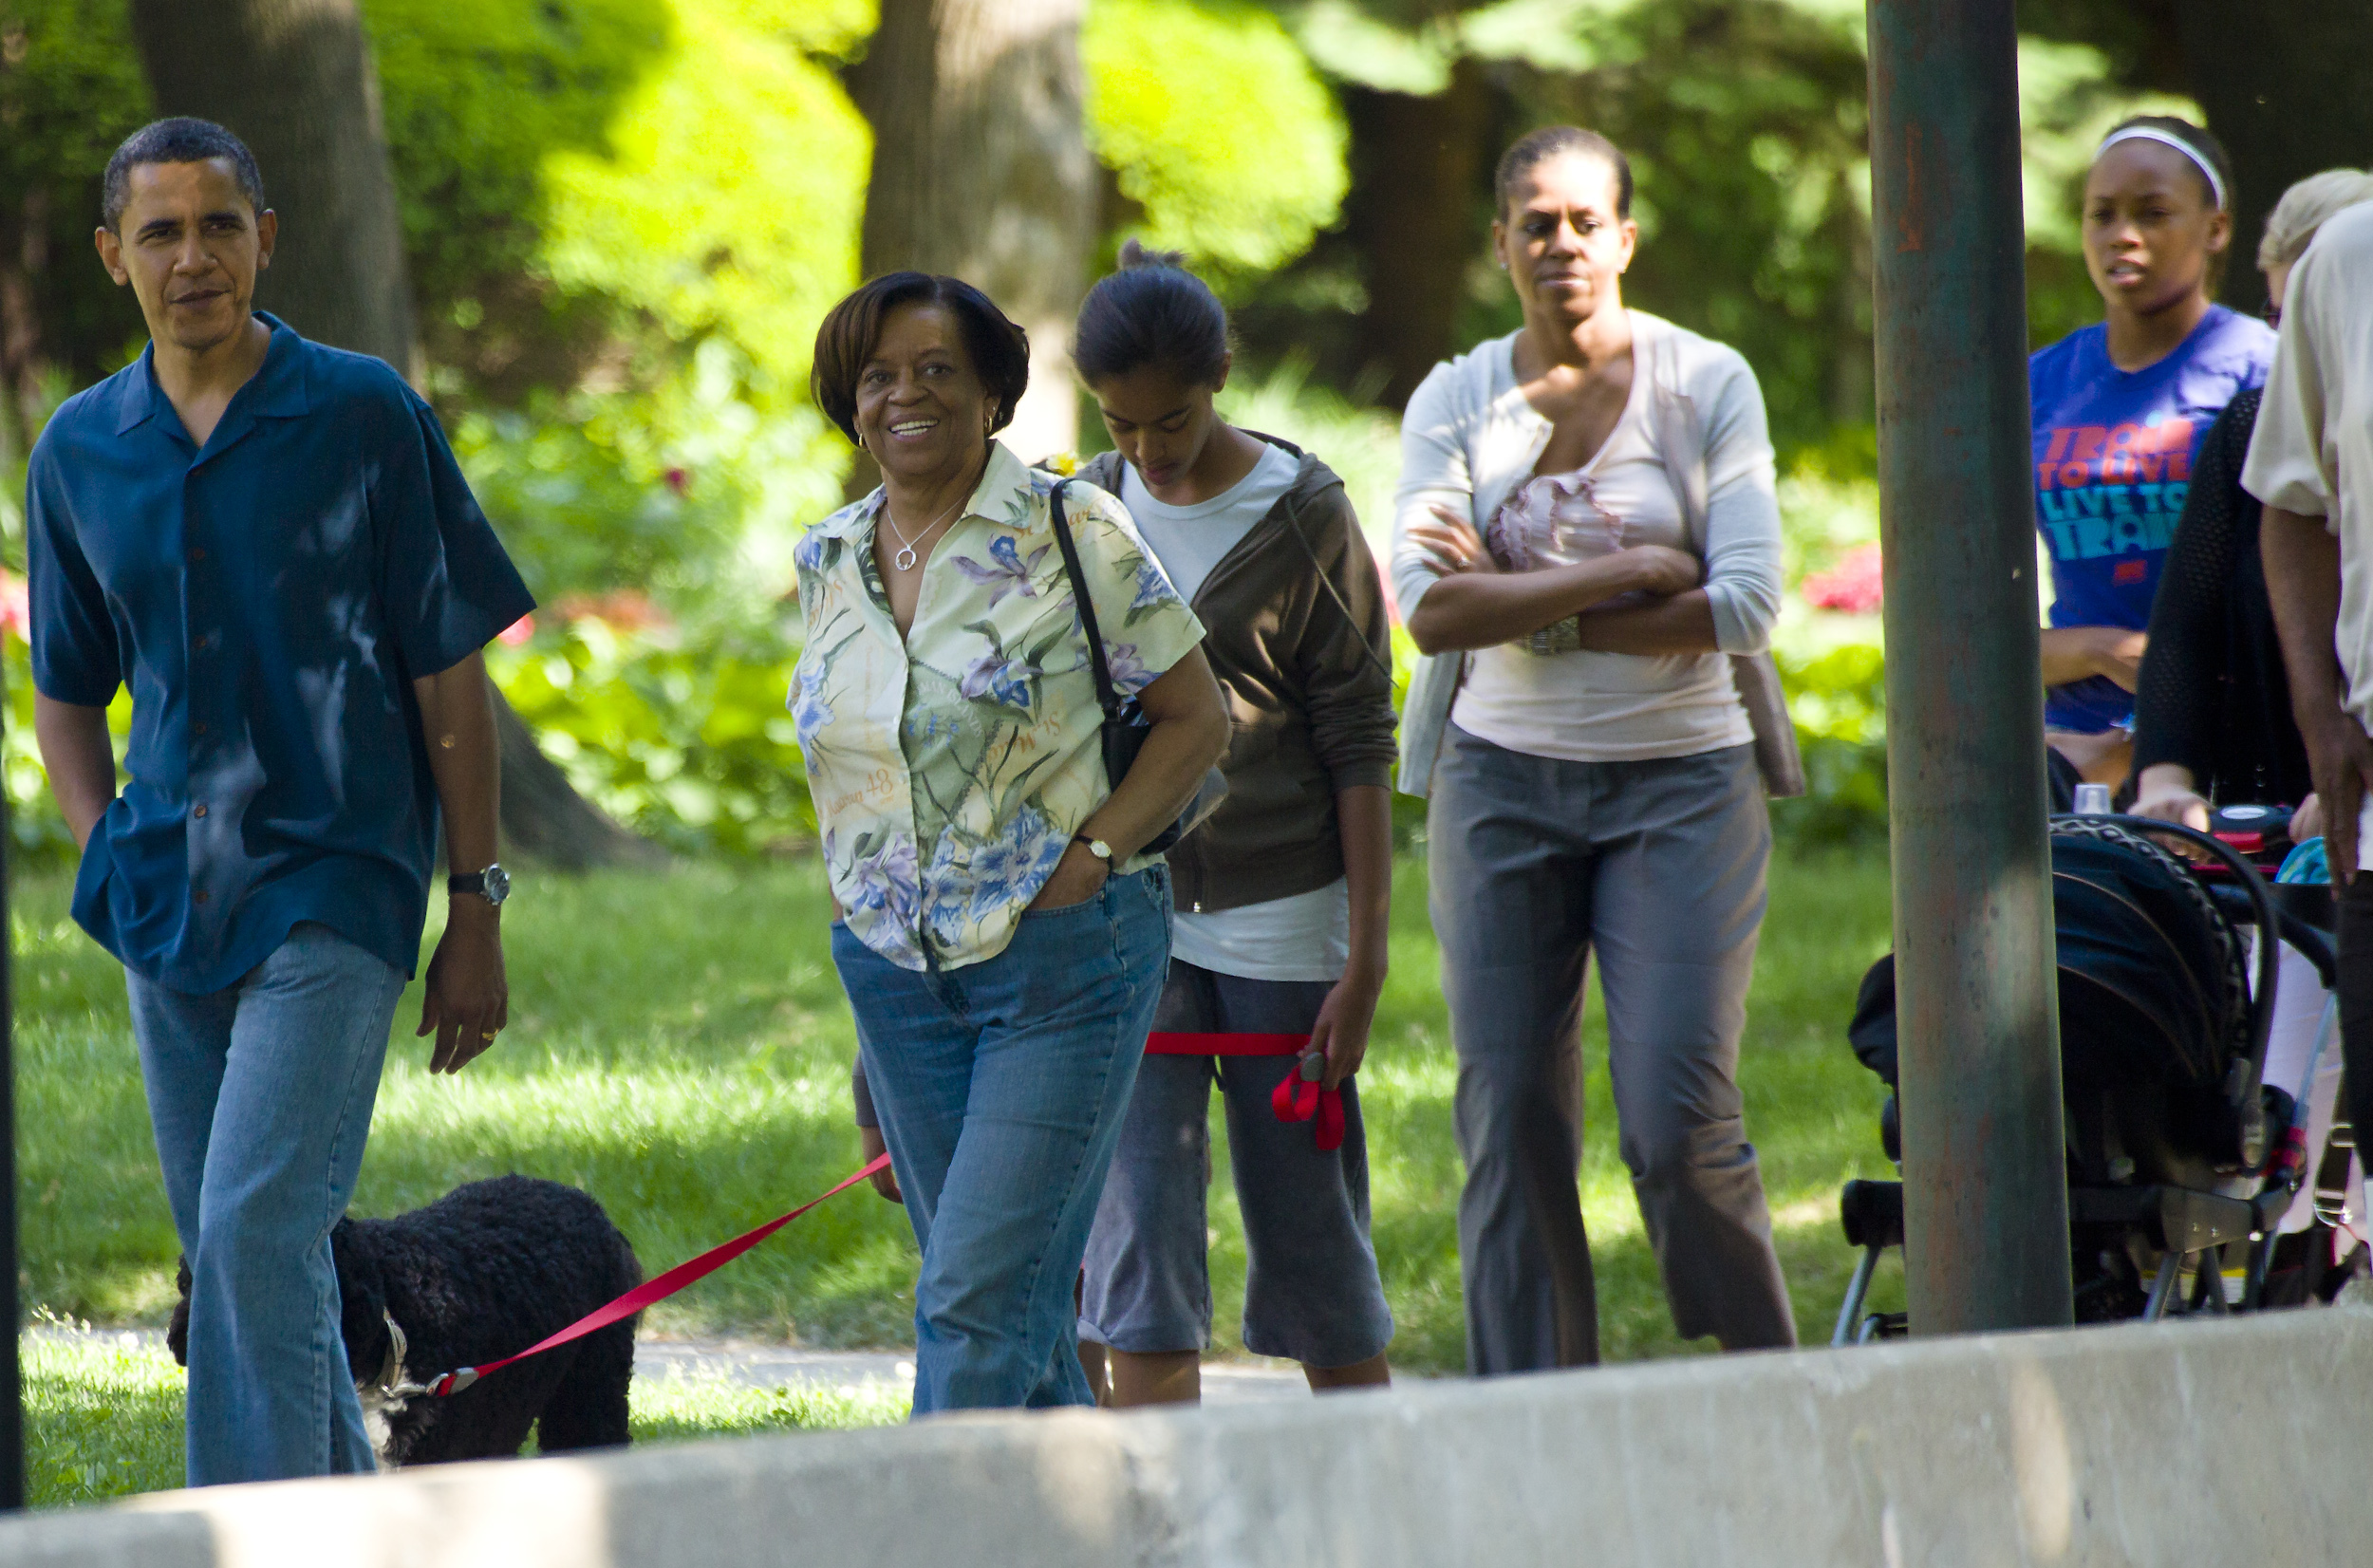 President Barack Obama takes a walk down the street from his home accompanied by his mother-in-law Marian Robinson, daughter Malia Obama, First Lady Michelle Obama Obama and dog Bo May 29, 2010, in Chicago, Illinois. (Getty Images)